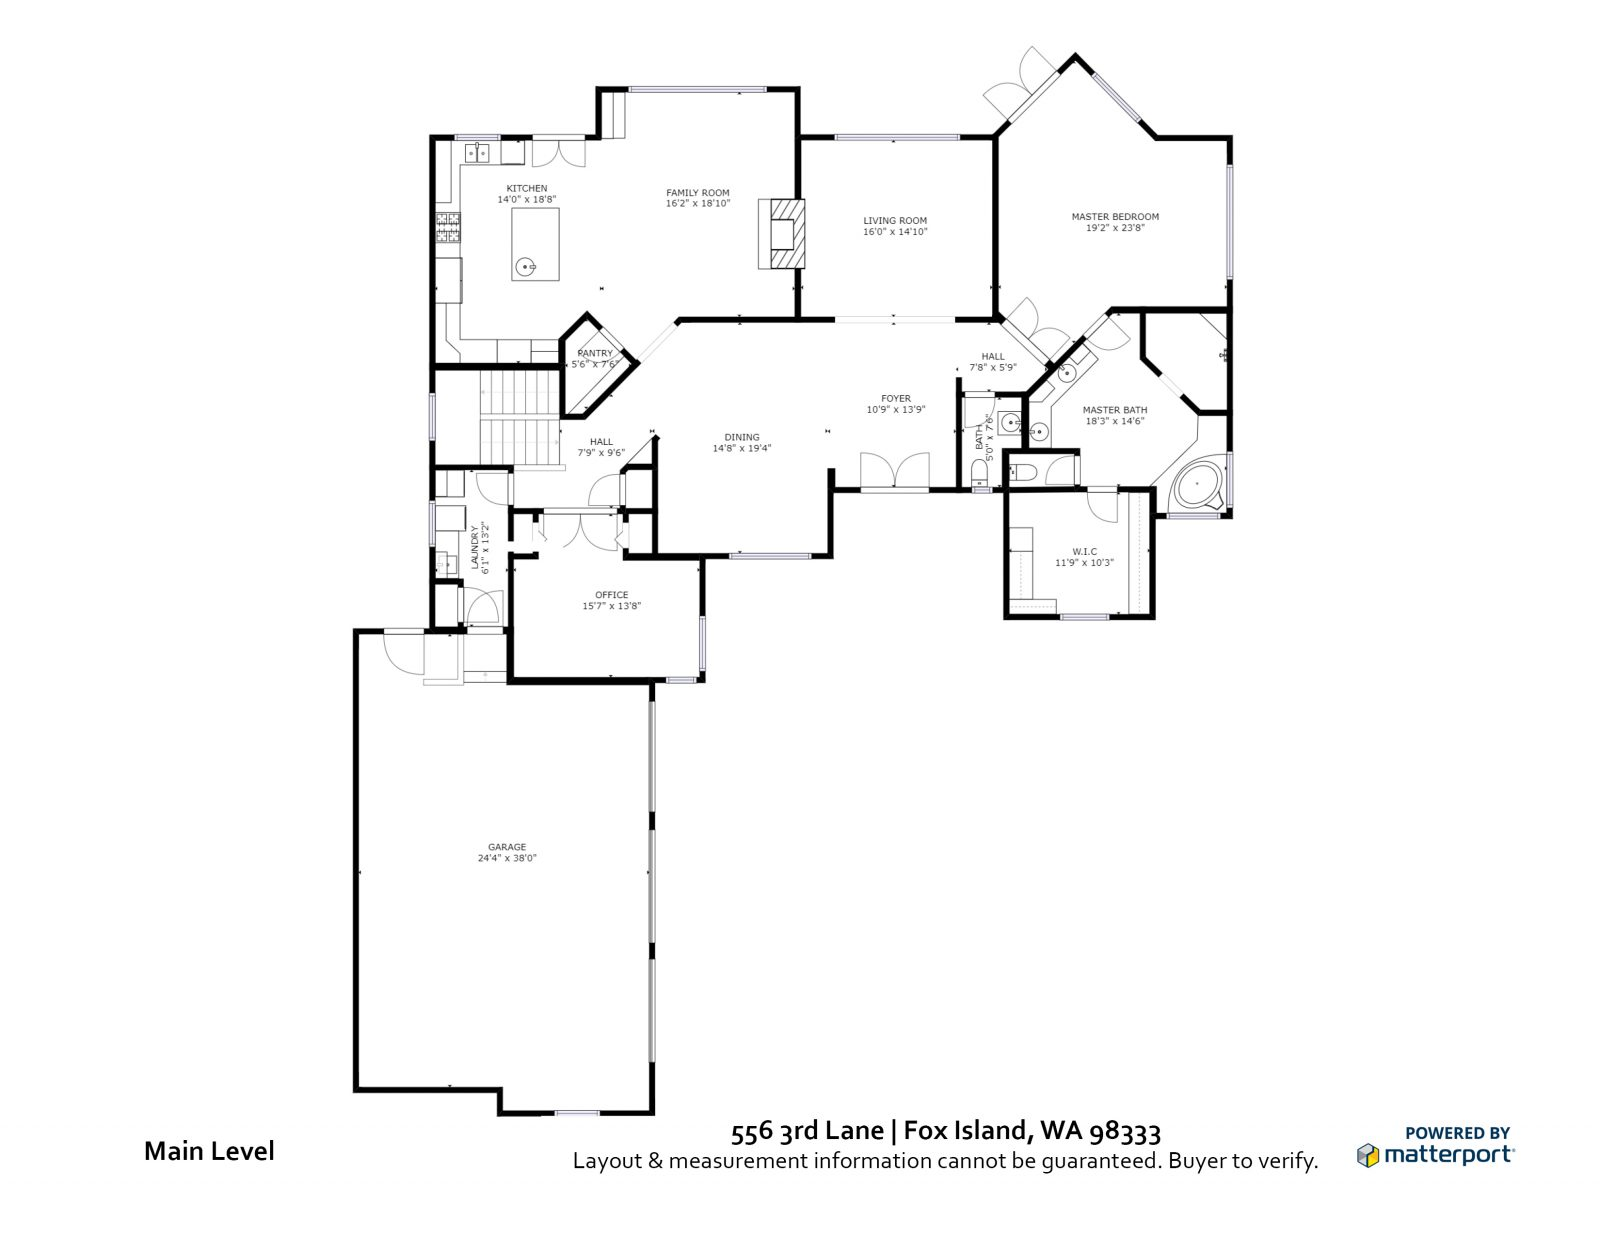 MAIN FLOOR: 556 3rd Lane, Fox Island WA 98333